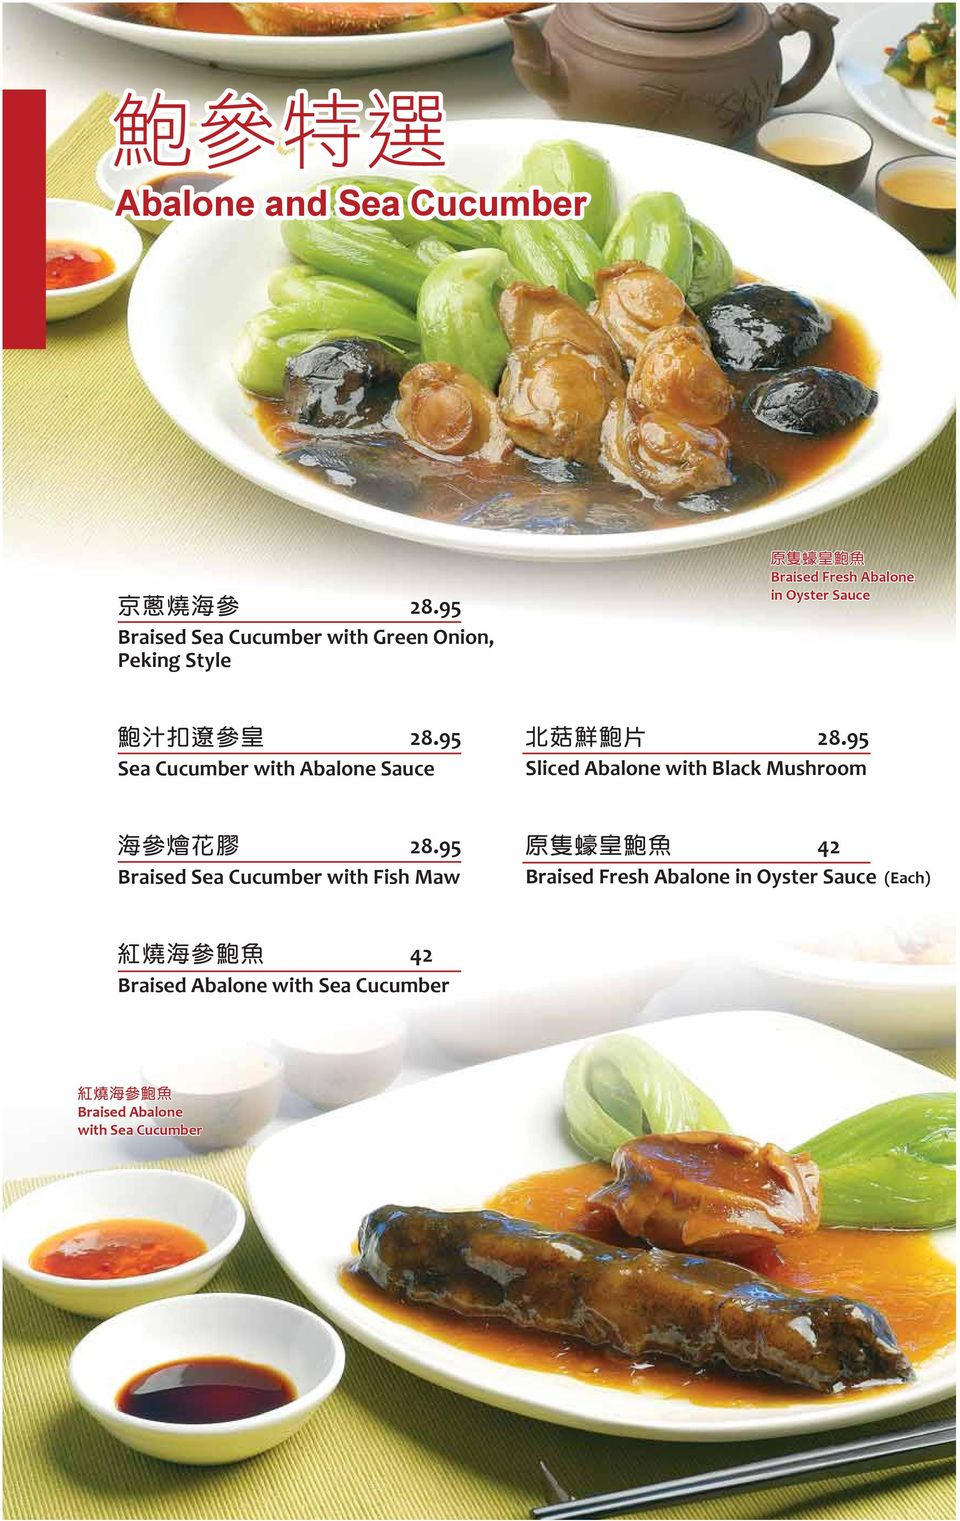 Sauce 28.95 Sea Cucumber with Abalone Sauce 28.95 Sliced Abalone with Black Mushroom 28.